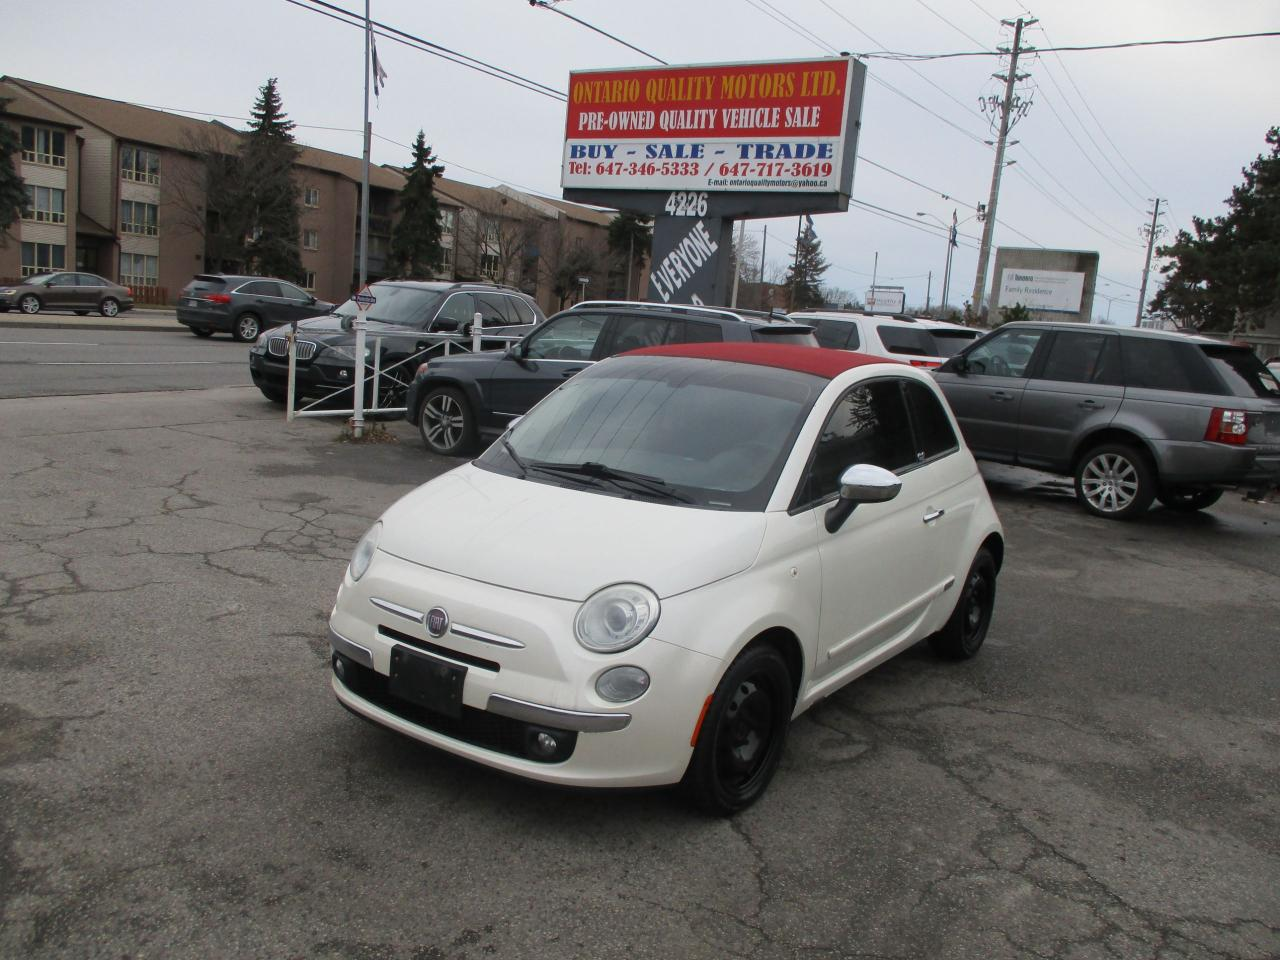 used 2012 fiat 500 gucci for sale in toronto, ontario | carpages.ca